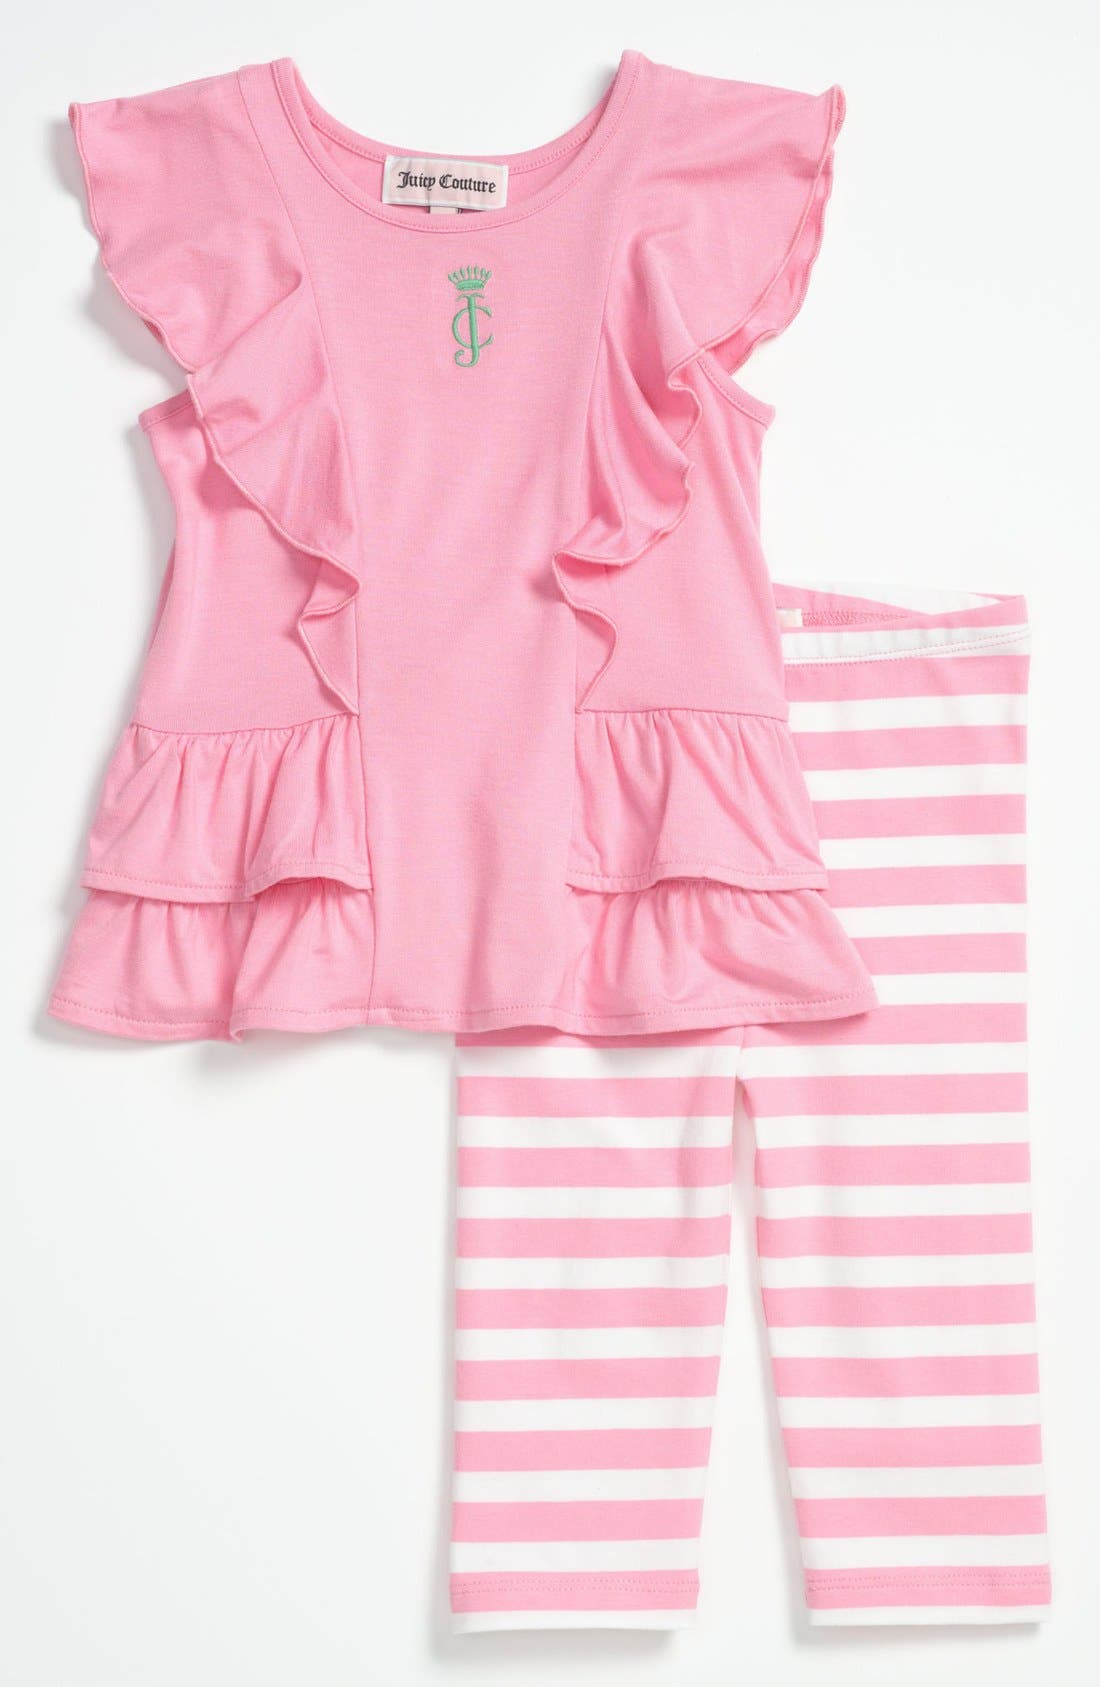 Main Image - Juicy Couture Tunic & Leggings (Baby)